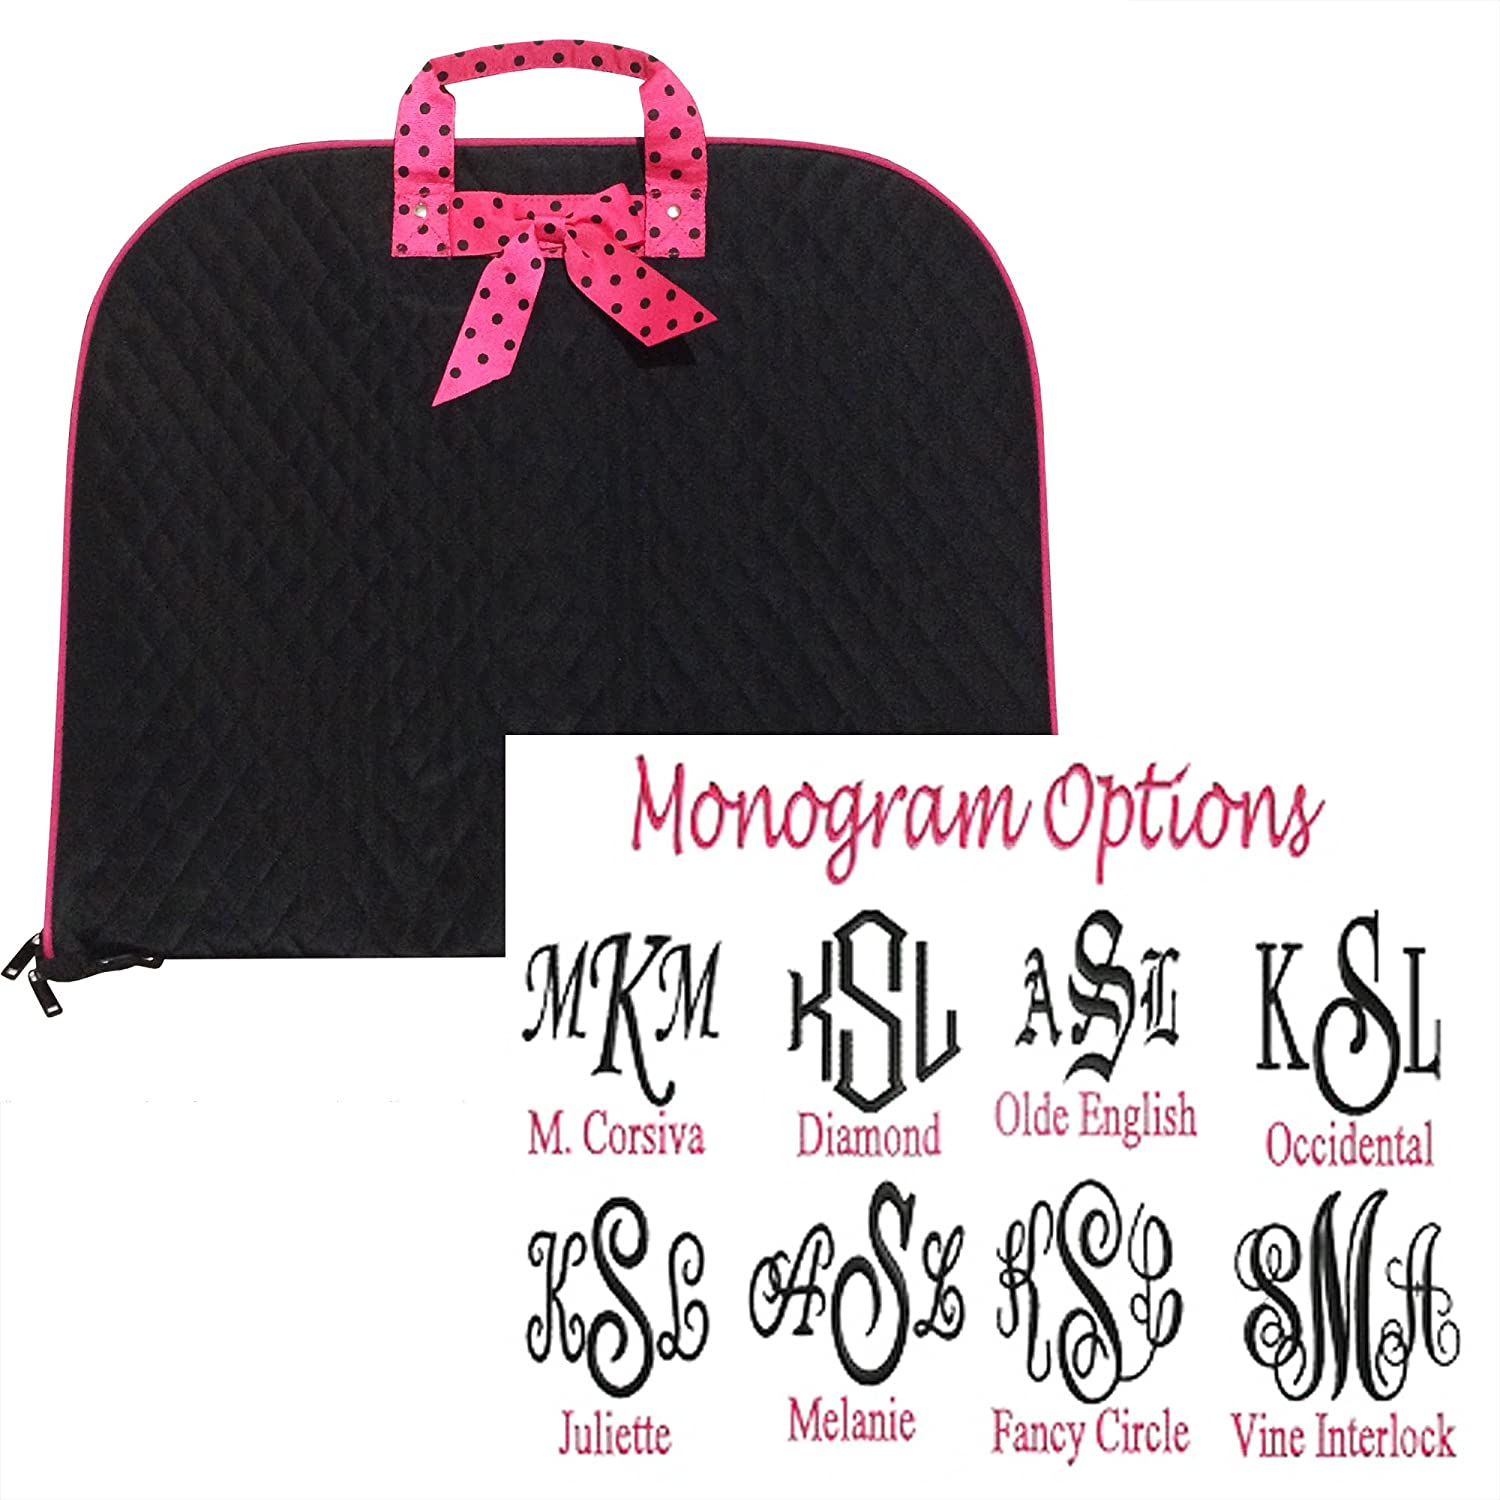 TOP QUALITY Monogram Quilted Garment Luggage Travel Costume Bag Personalized Custom